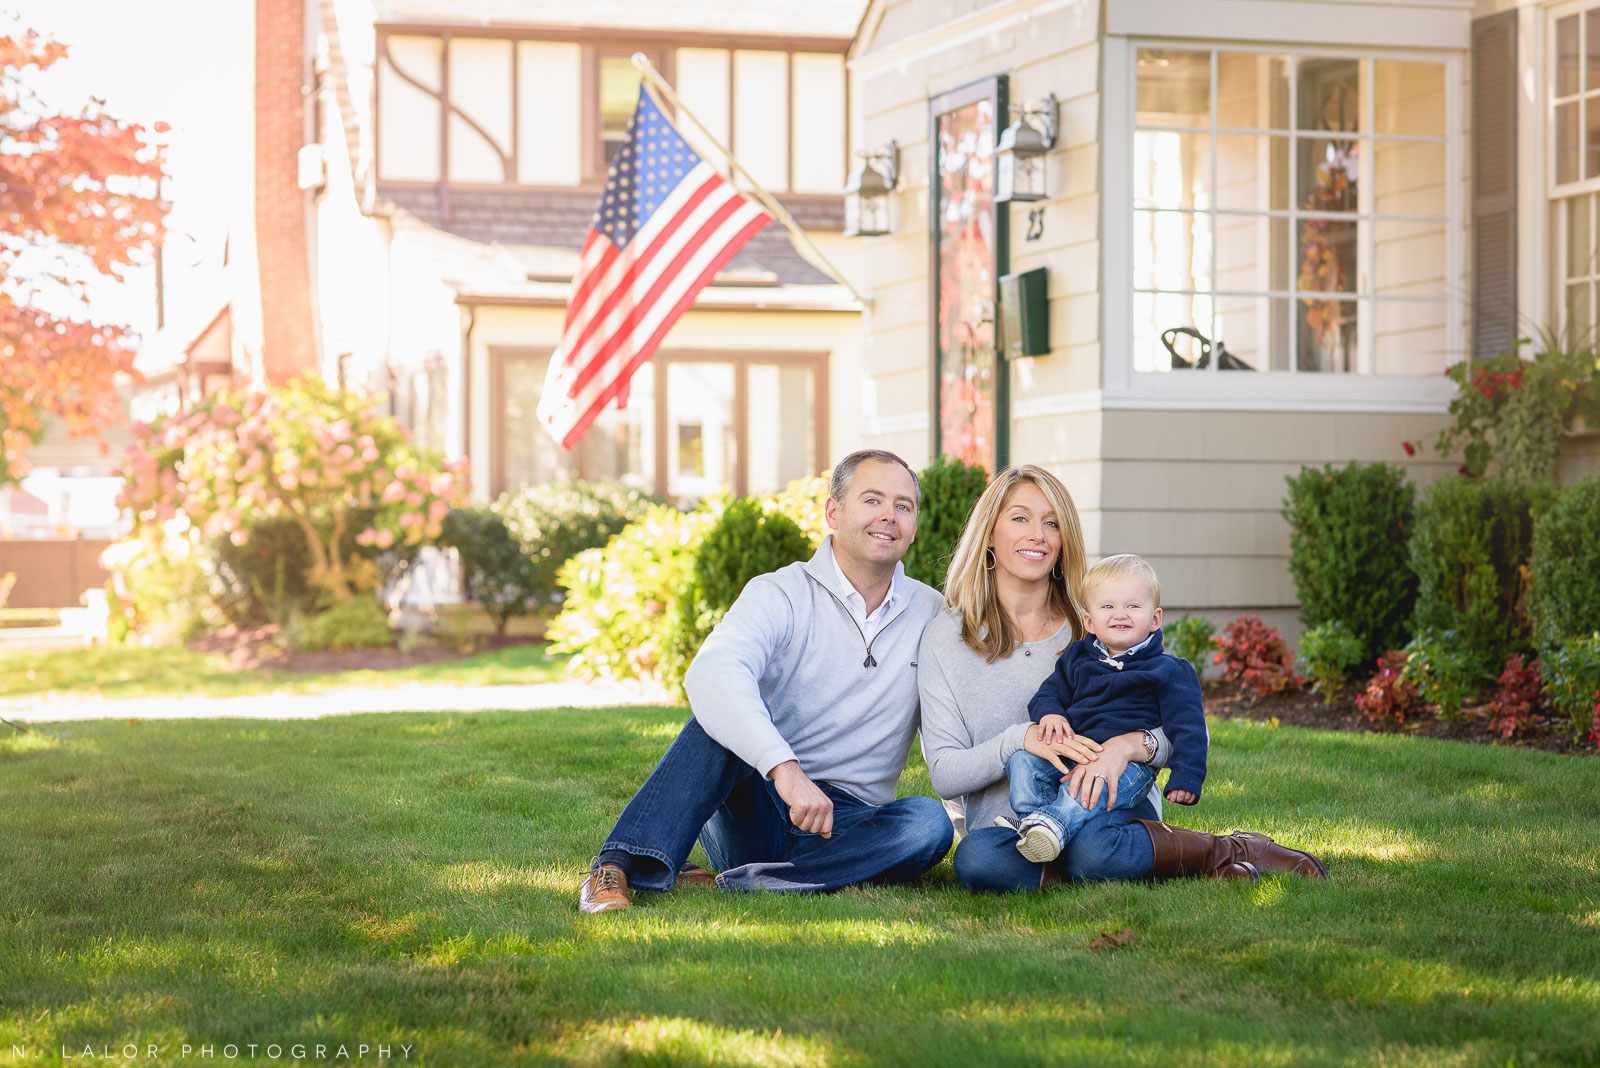 Fall family portrait in Fairfield Connecticut by N. Lalor Photography.